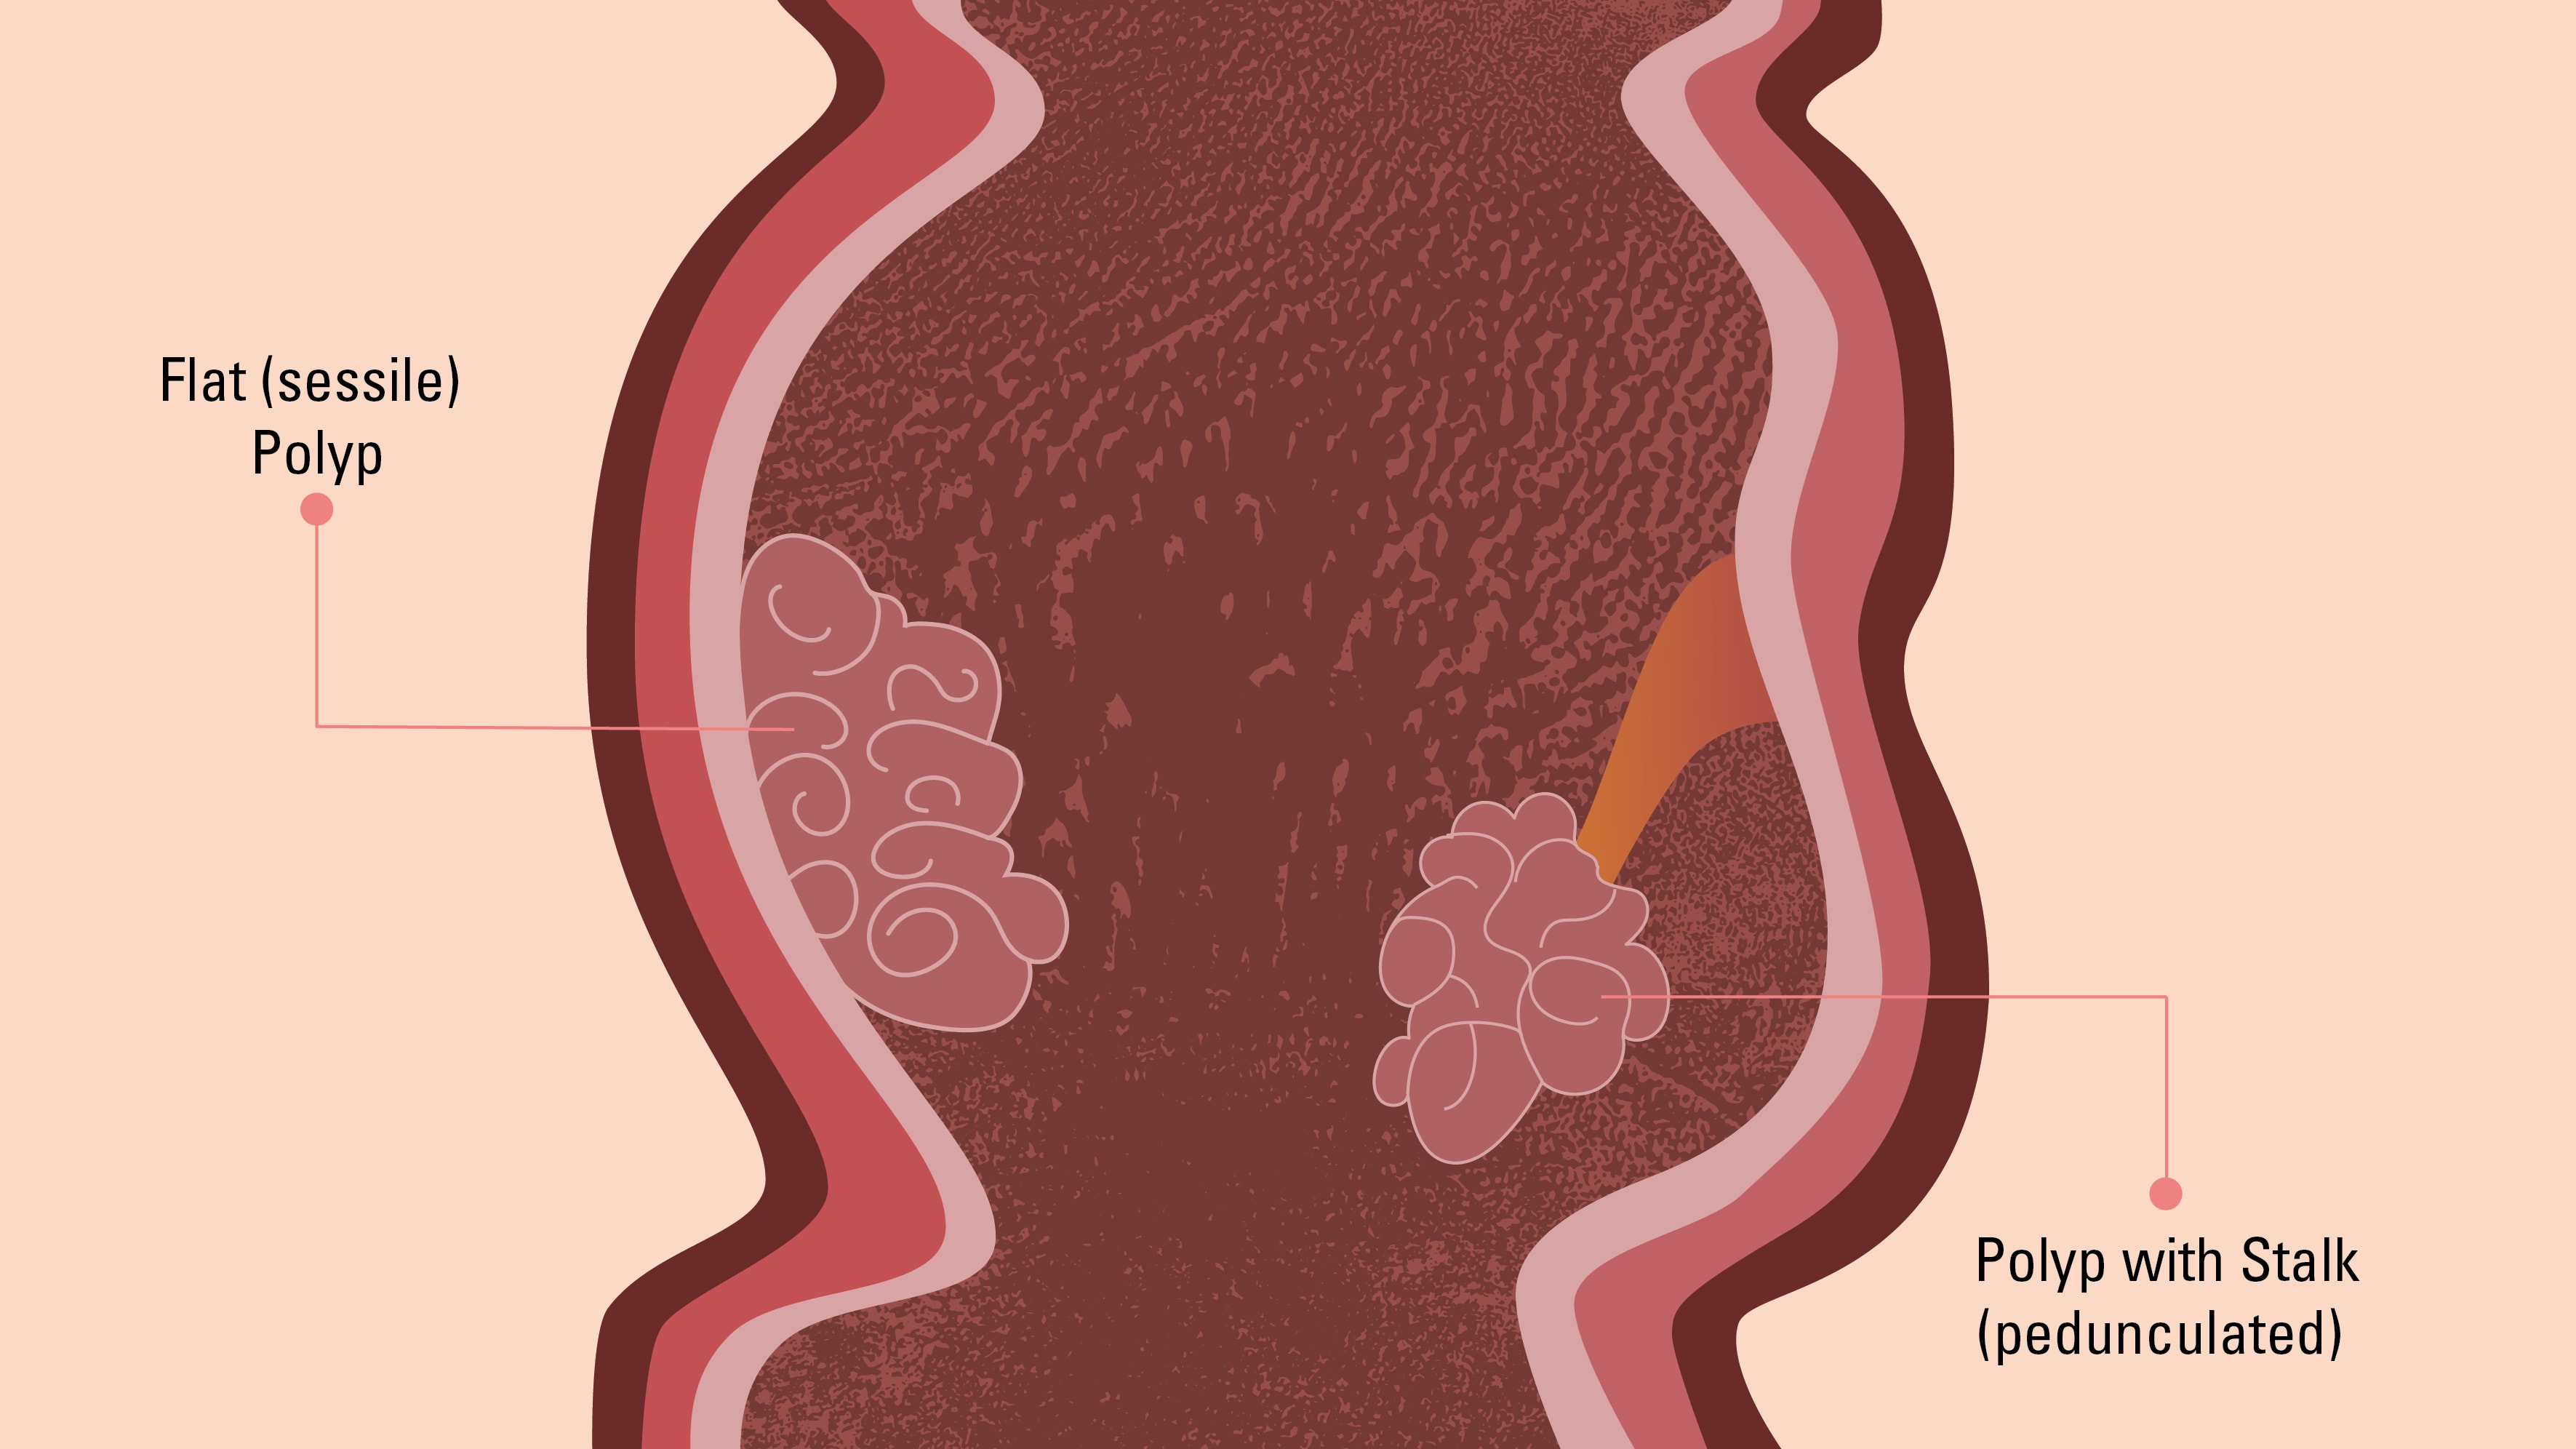 Types Of Colon Polyps Colon Polyp Symptoms And Risk Factors